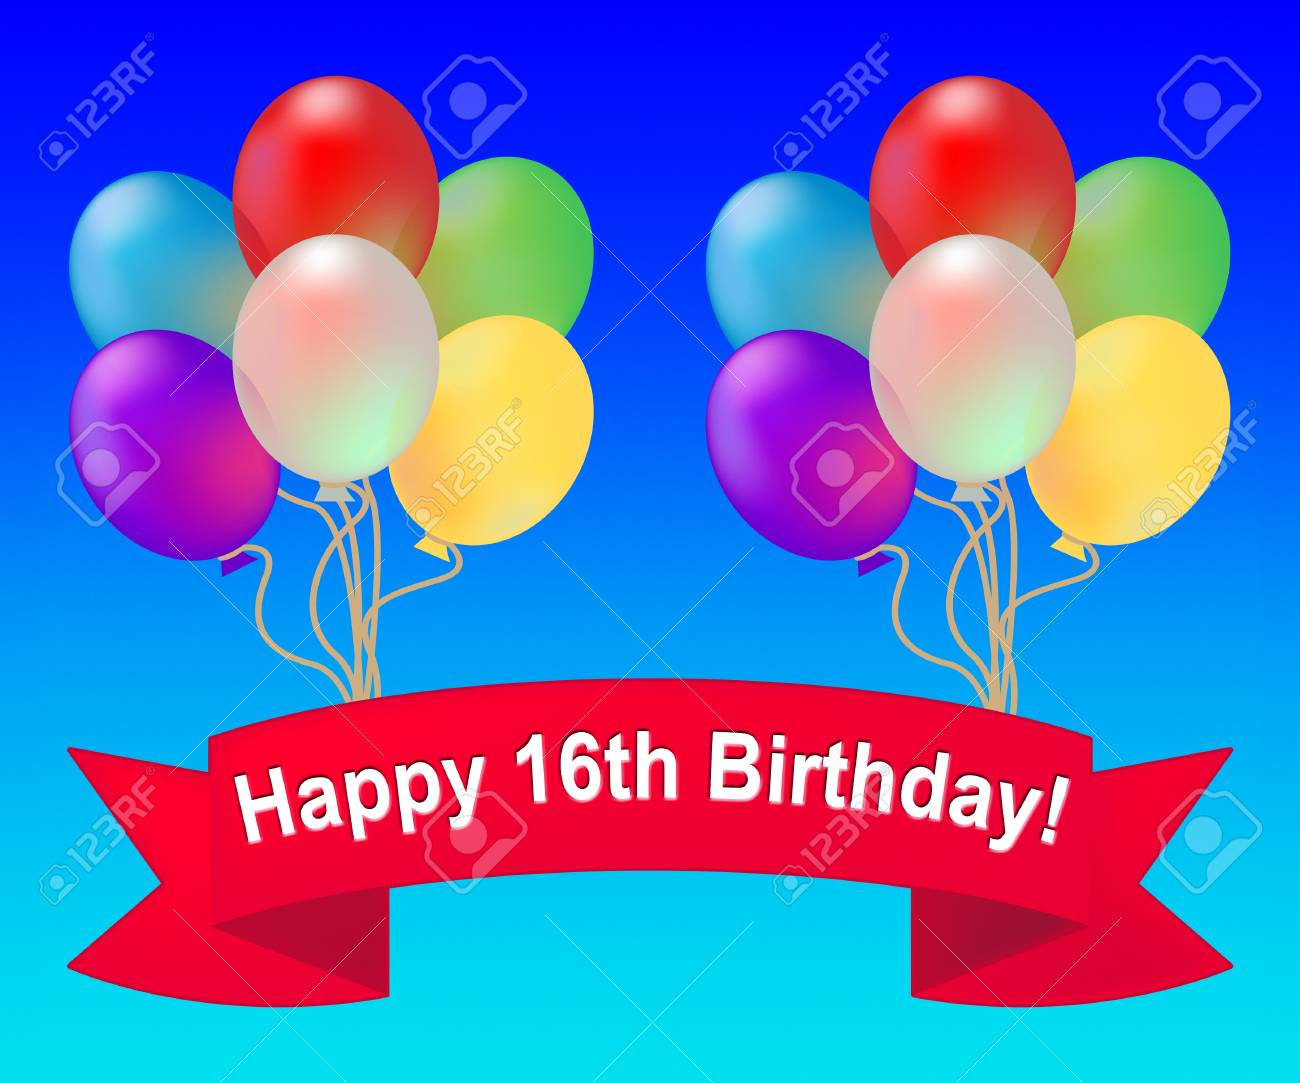 Happy Sixteenth Birthday Balloons Means 16th Party Celebration 3d Illustration Stock